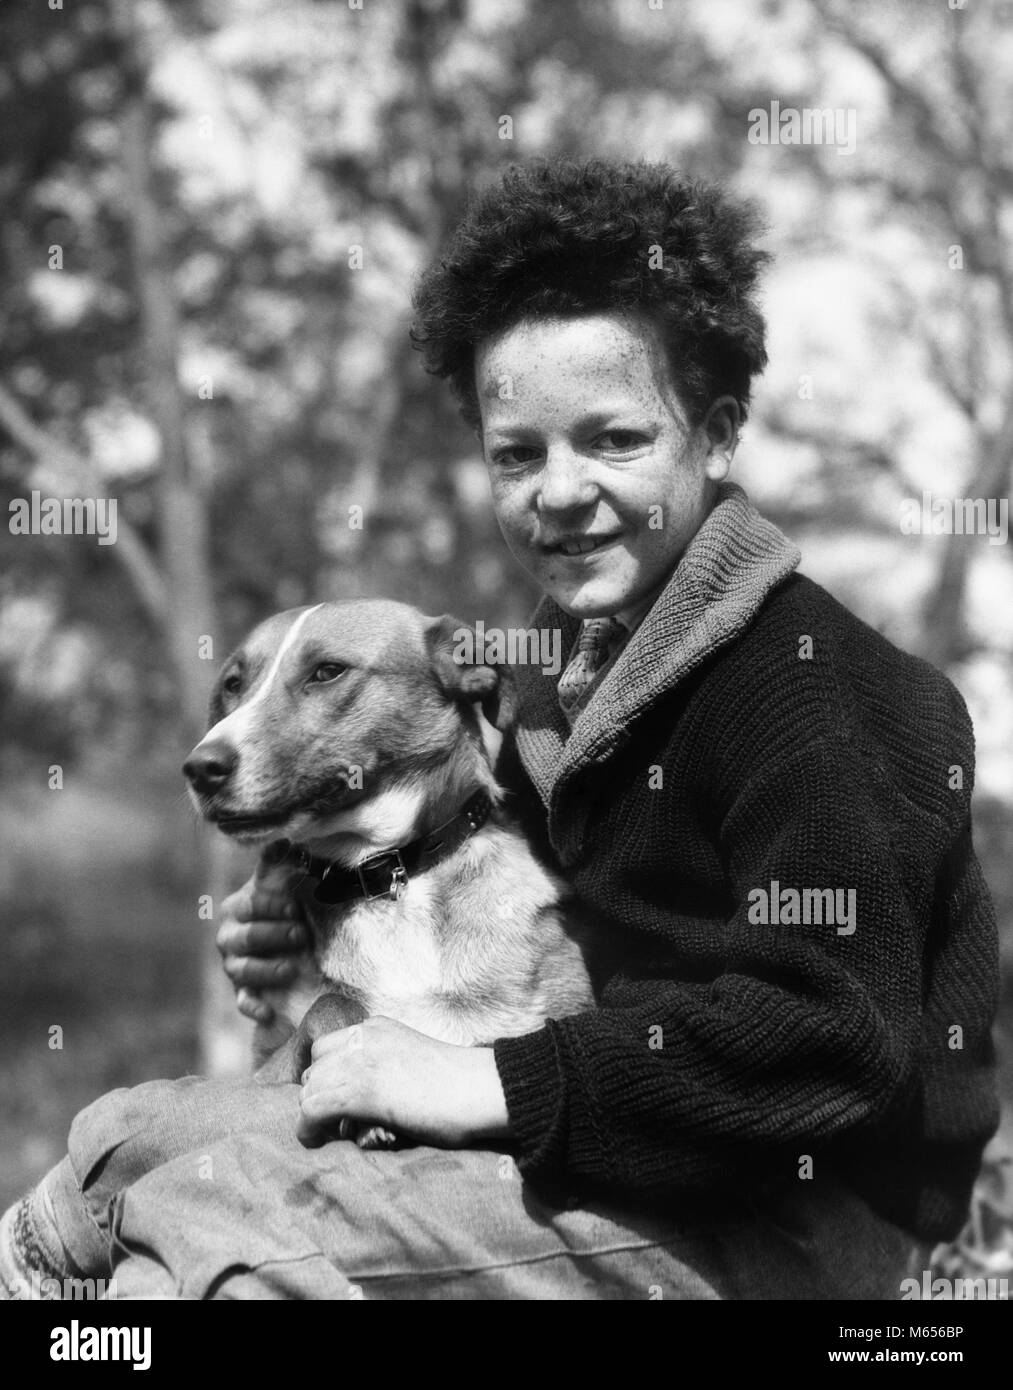 1920s 1930s SMILING BOY LOOKING AT CAMERA HOLDING DOG - d1441 HAR001 HARS 10-12 YEARS 7-9 YEARS PRETEEN BOY ONE - Stock Image